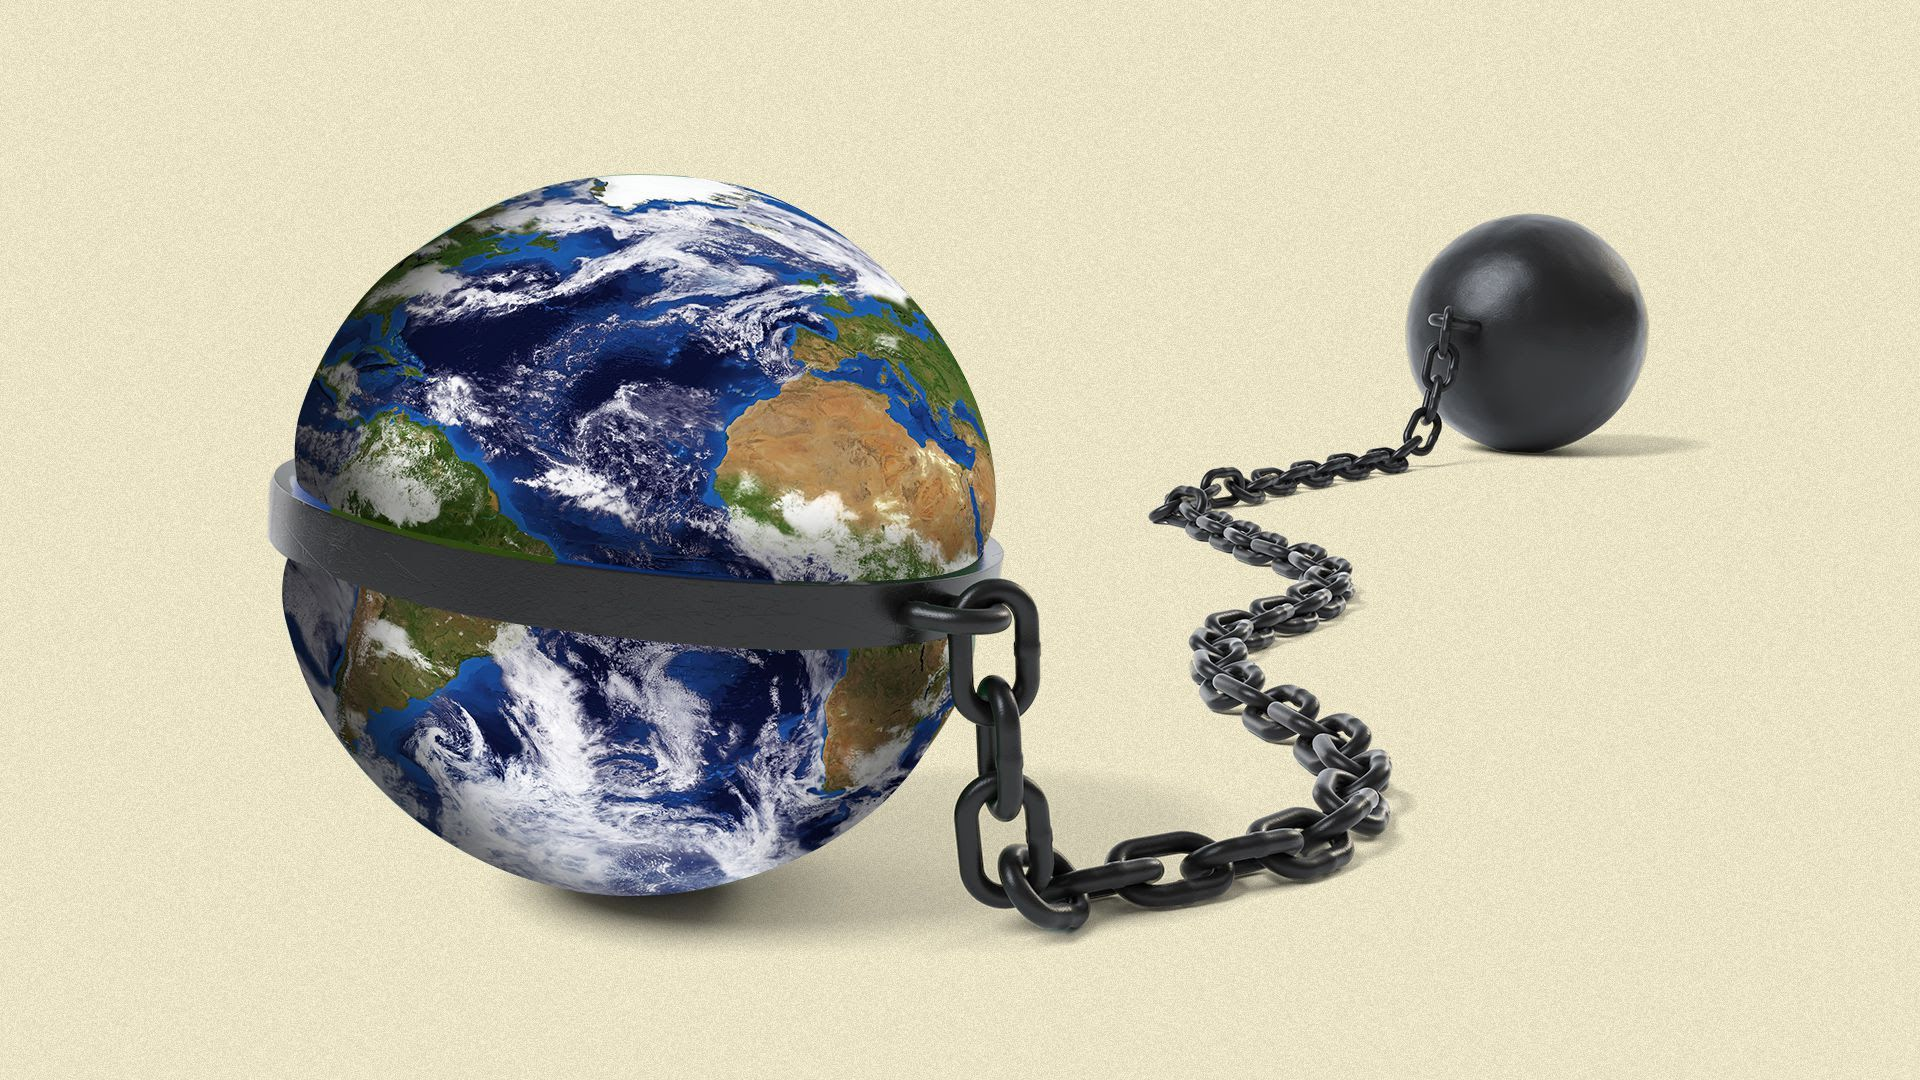 Illustration of the globe locked down by a ball and chain